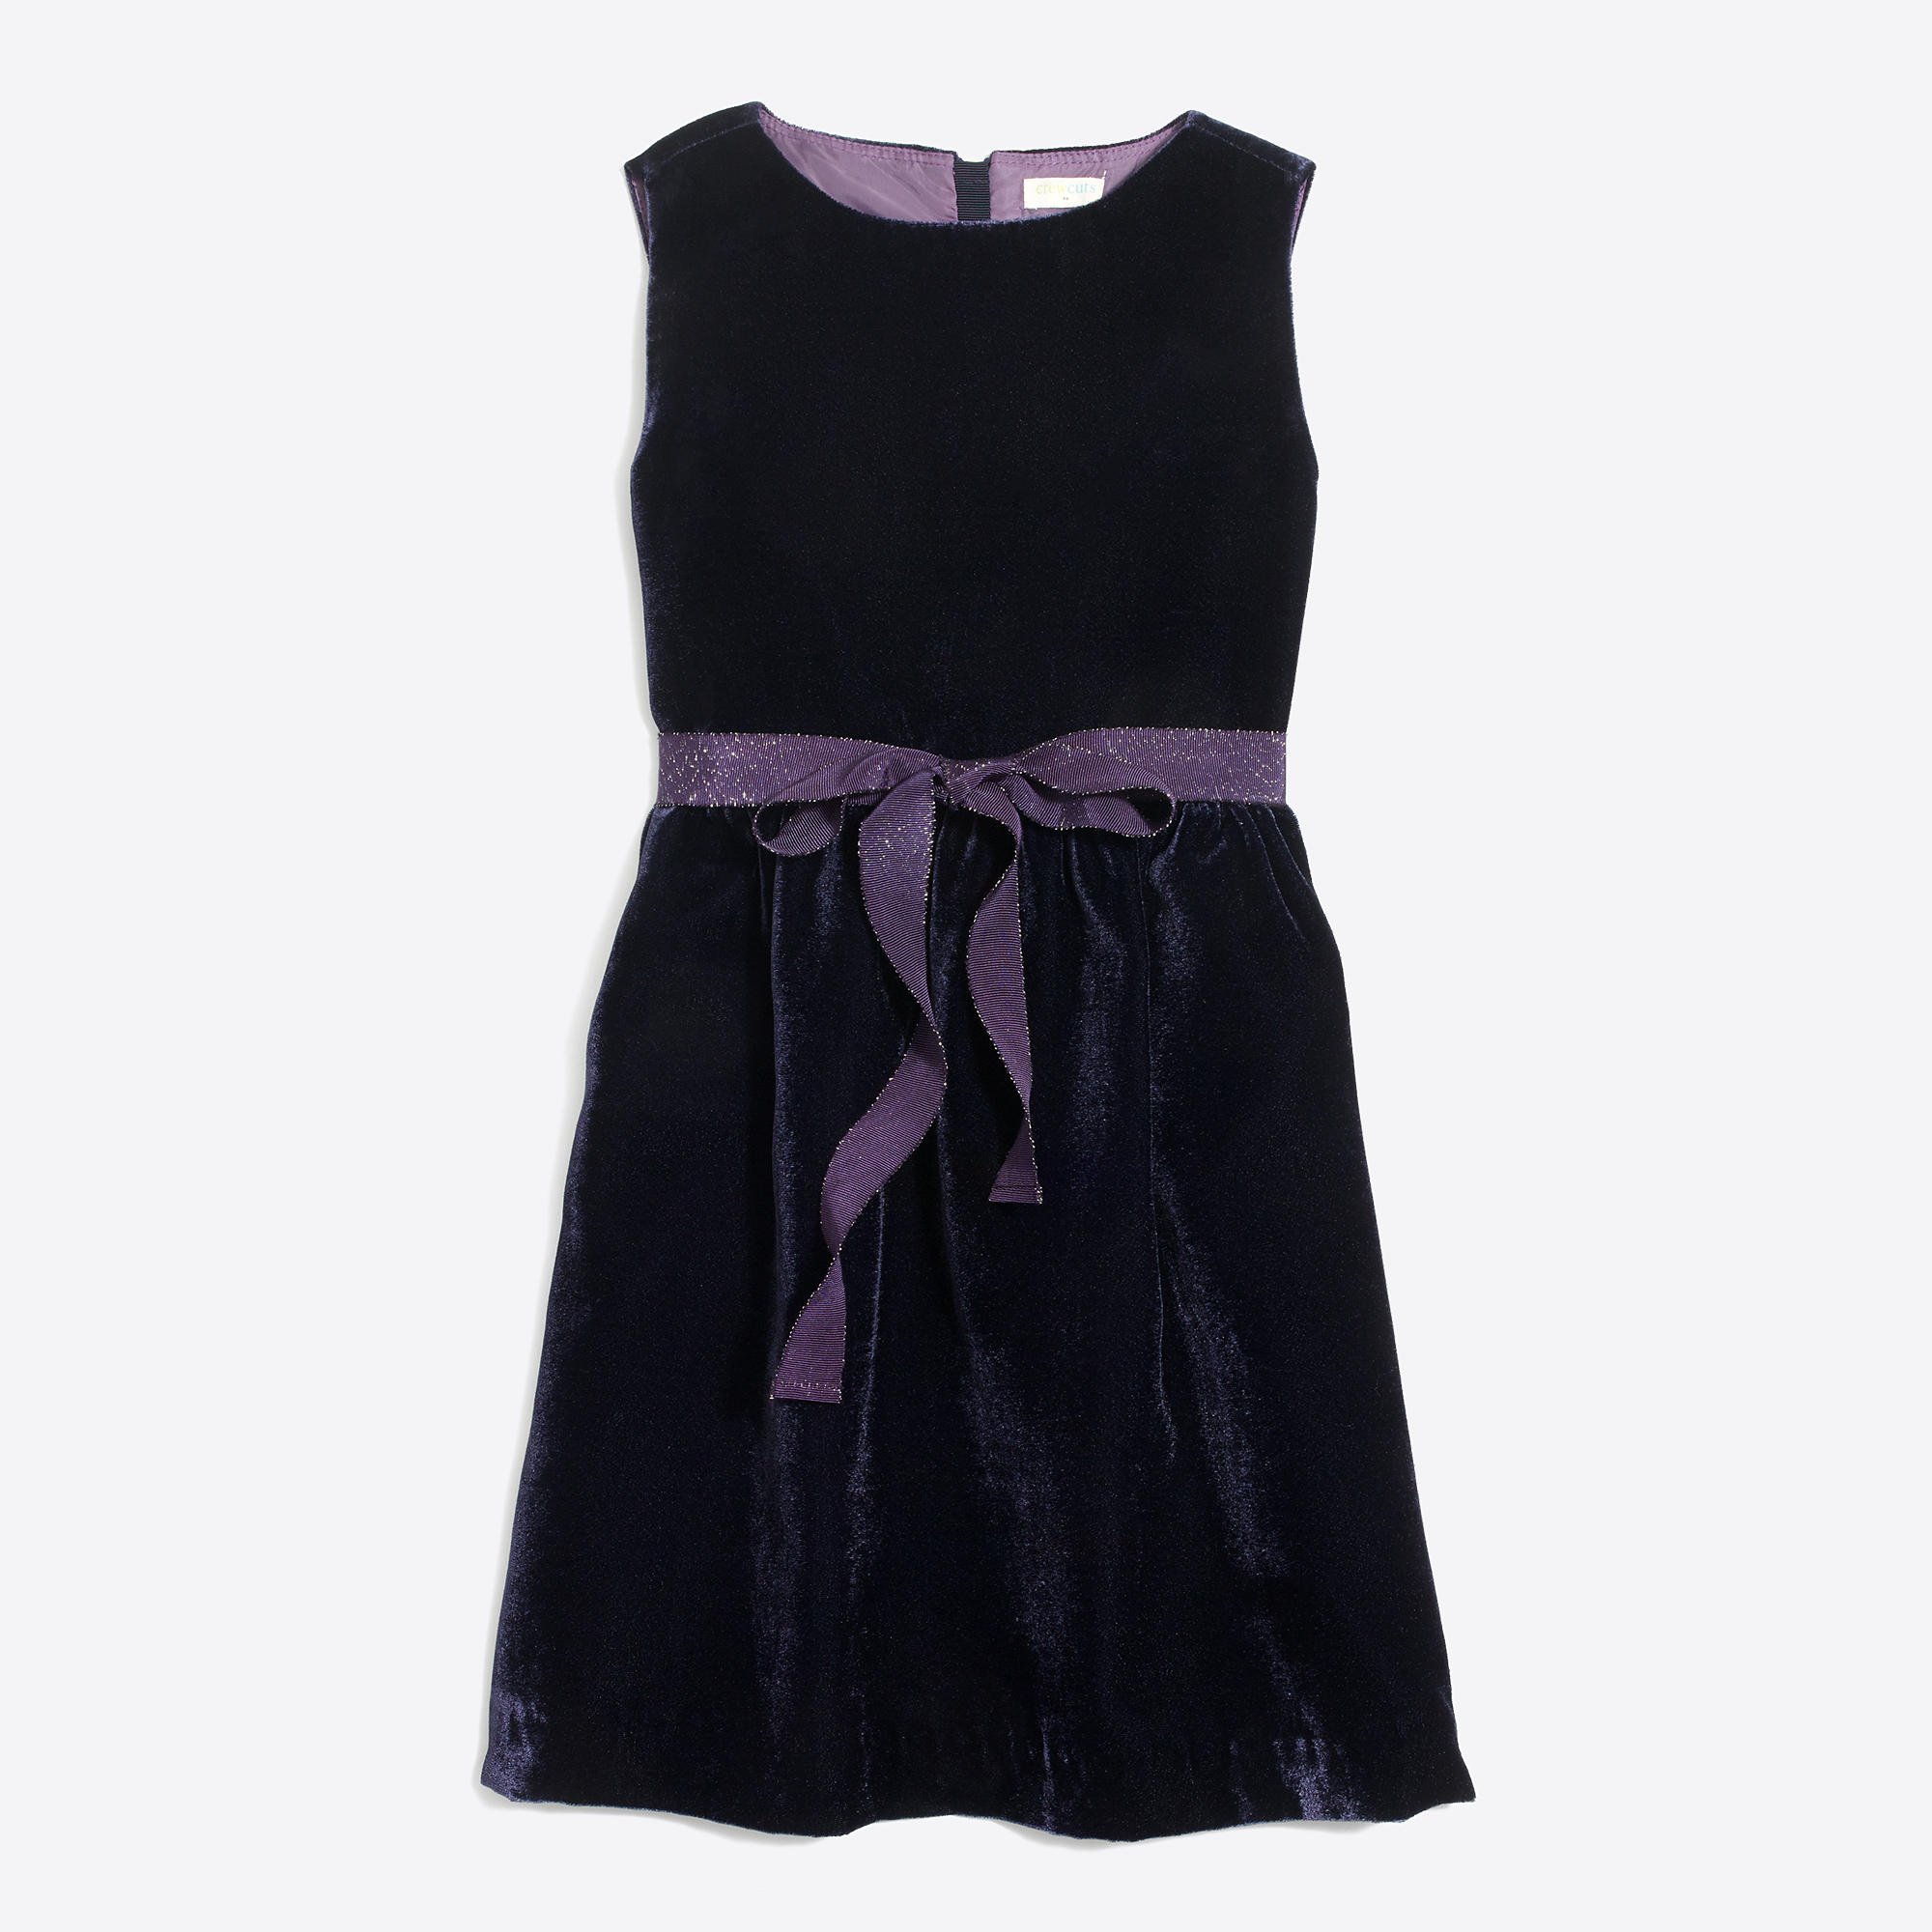 Shop at Macy's today for a Velvet Dress such as a Black Velvet Dress, Blue Velvet Dress or Red Velvet Dress. Macy's Presents: The Edit - A curated mix of fashion and inspiration Check It Out Free Shipping with $99 purchase + Free Store Pickup.